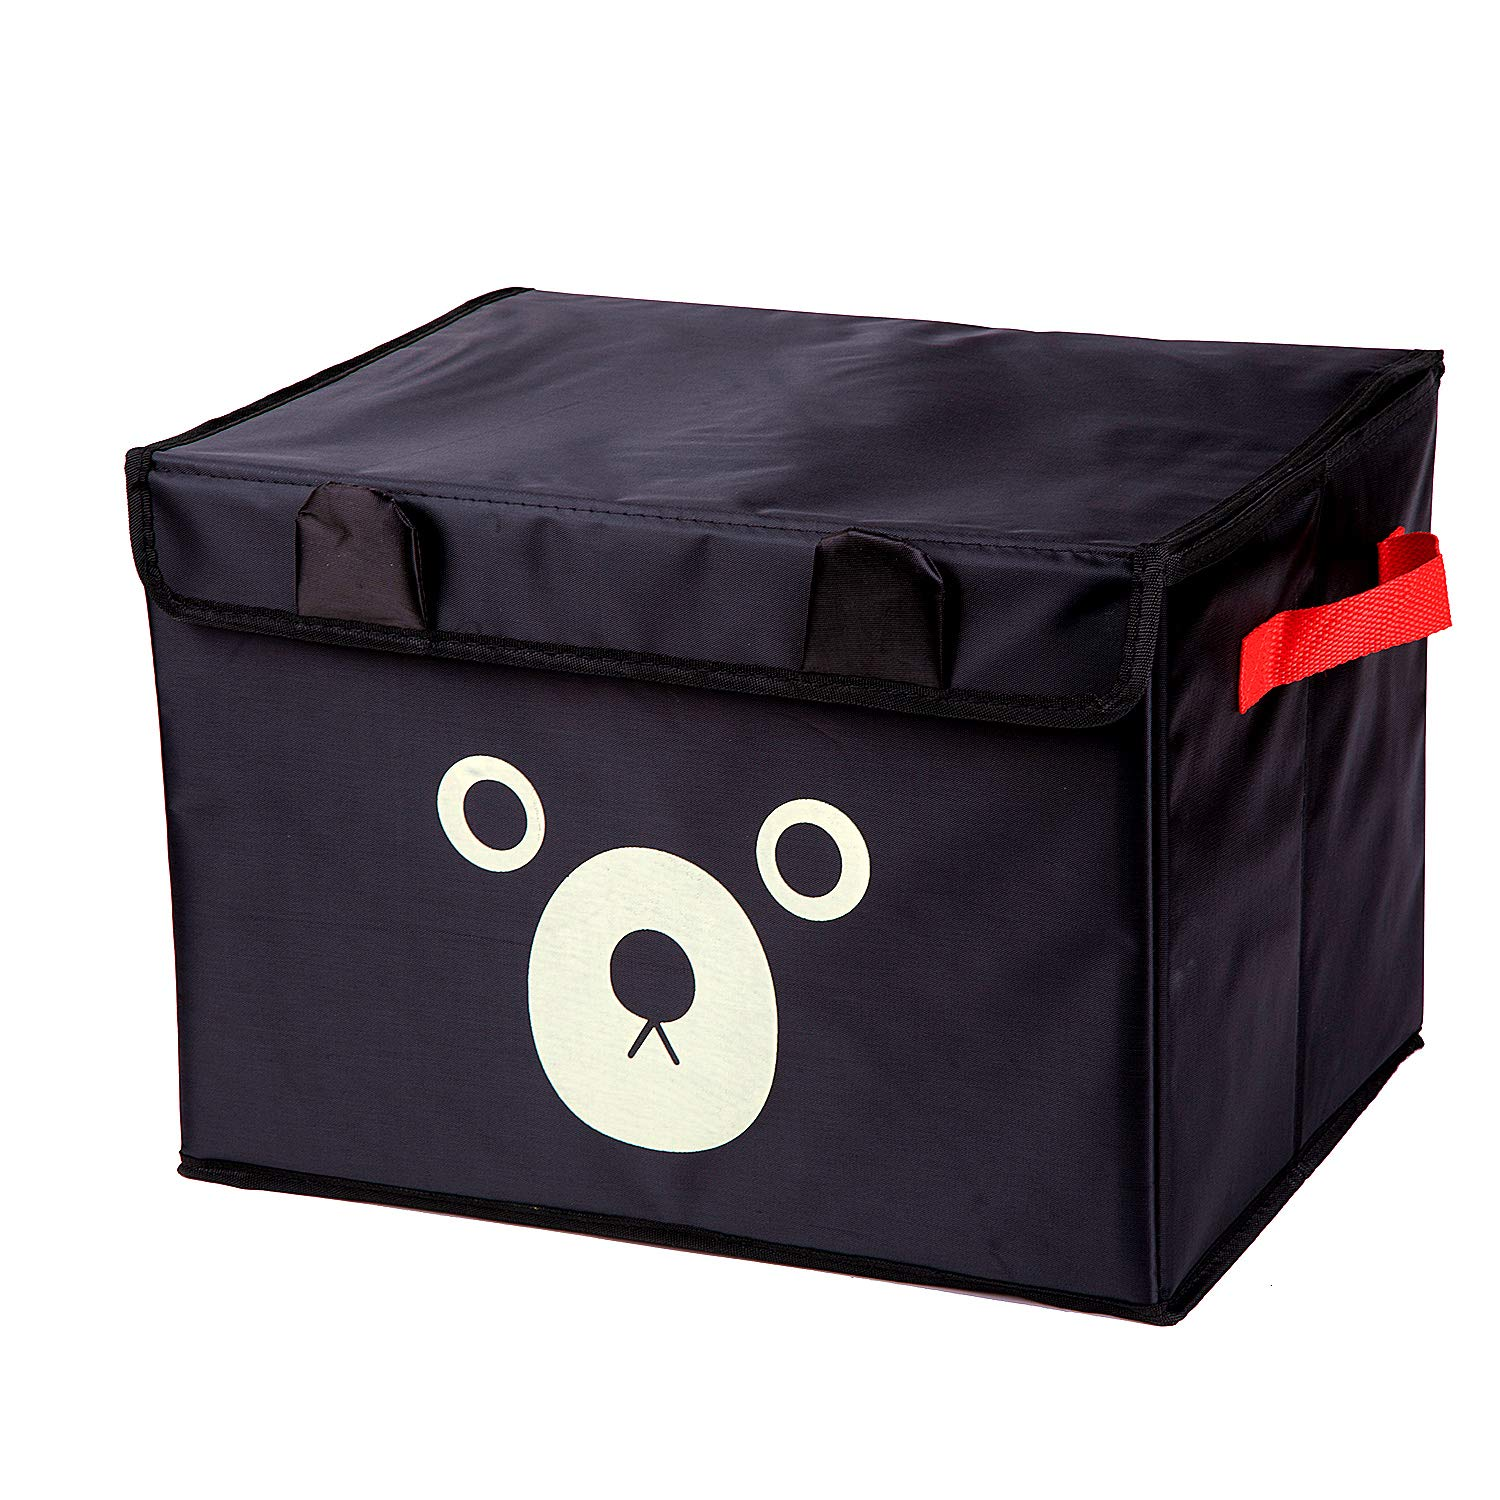 Detool Storage Bin with Velcro Cover Car Storage Box for Toy Storage, Collapsible Chest Box, Toys Organizer with Flip Lid for Kids Playroom, Baby Clothing, Children Books